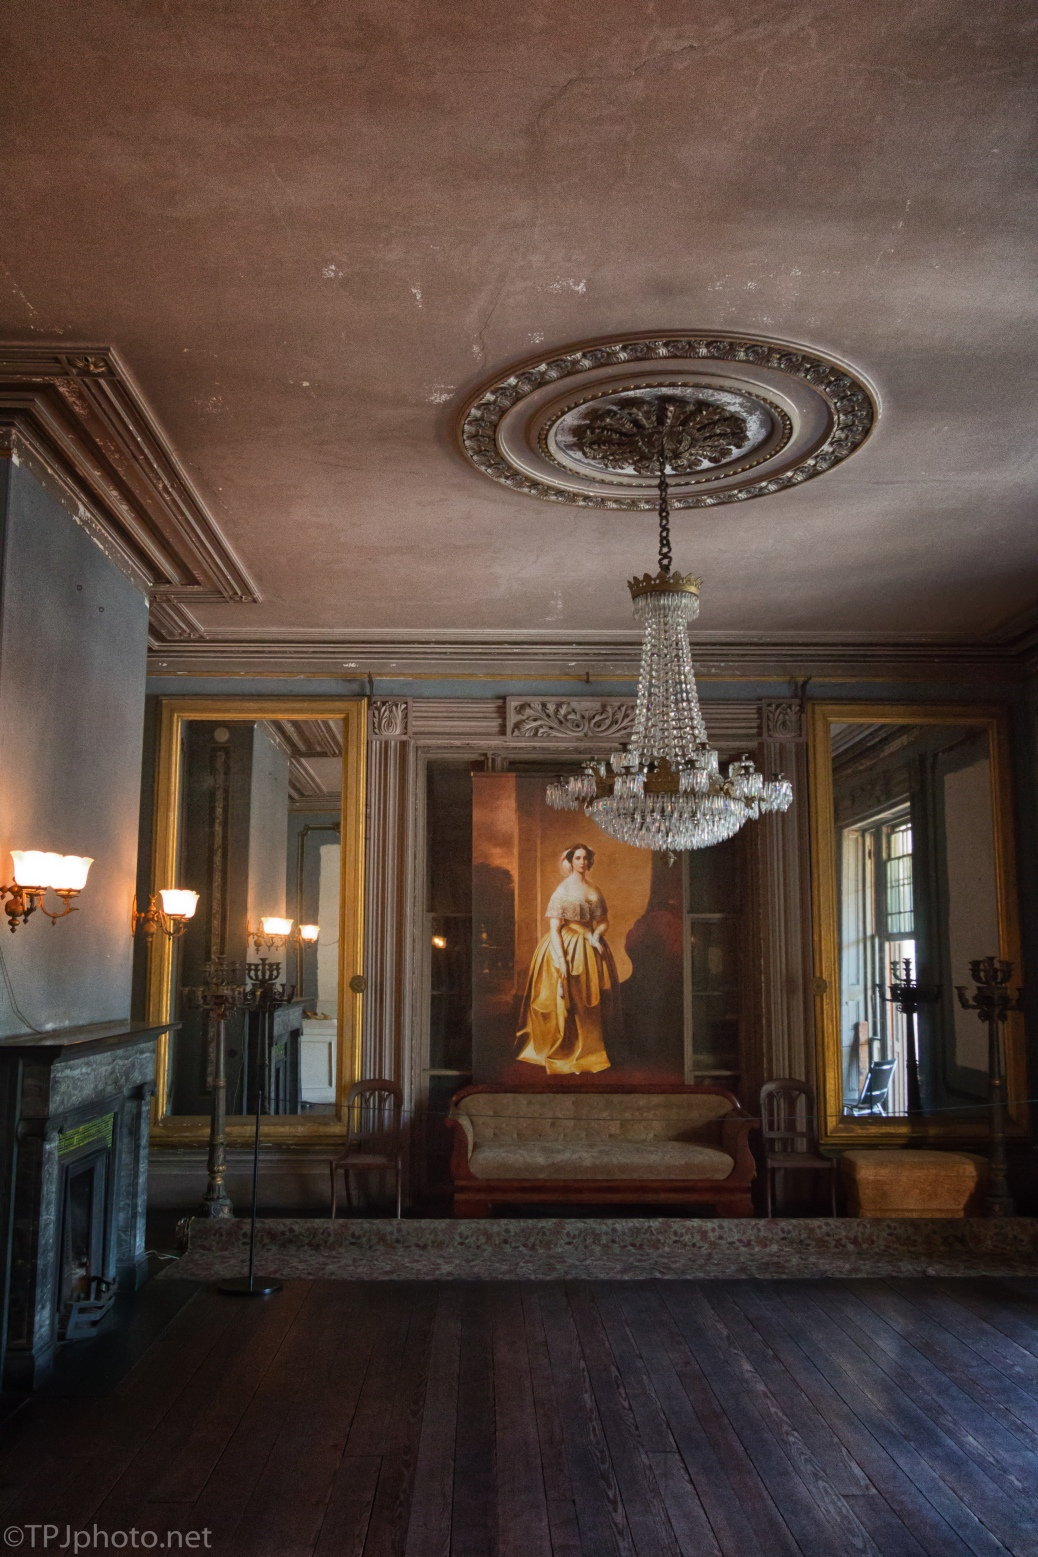 Art Collections Of An Old Grand House - click to enlarge